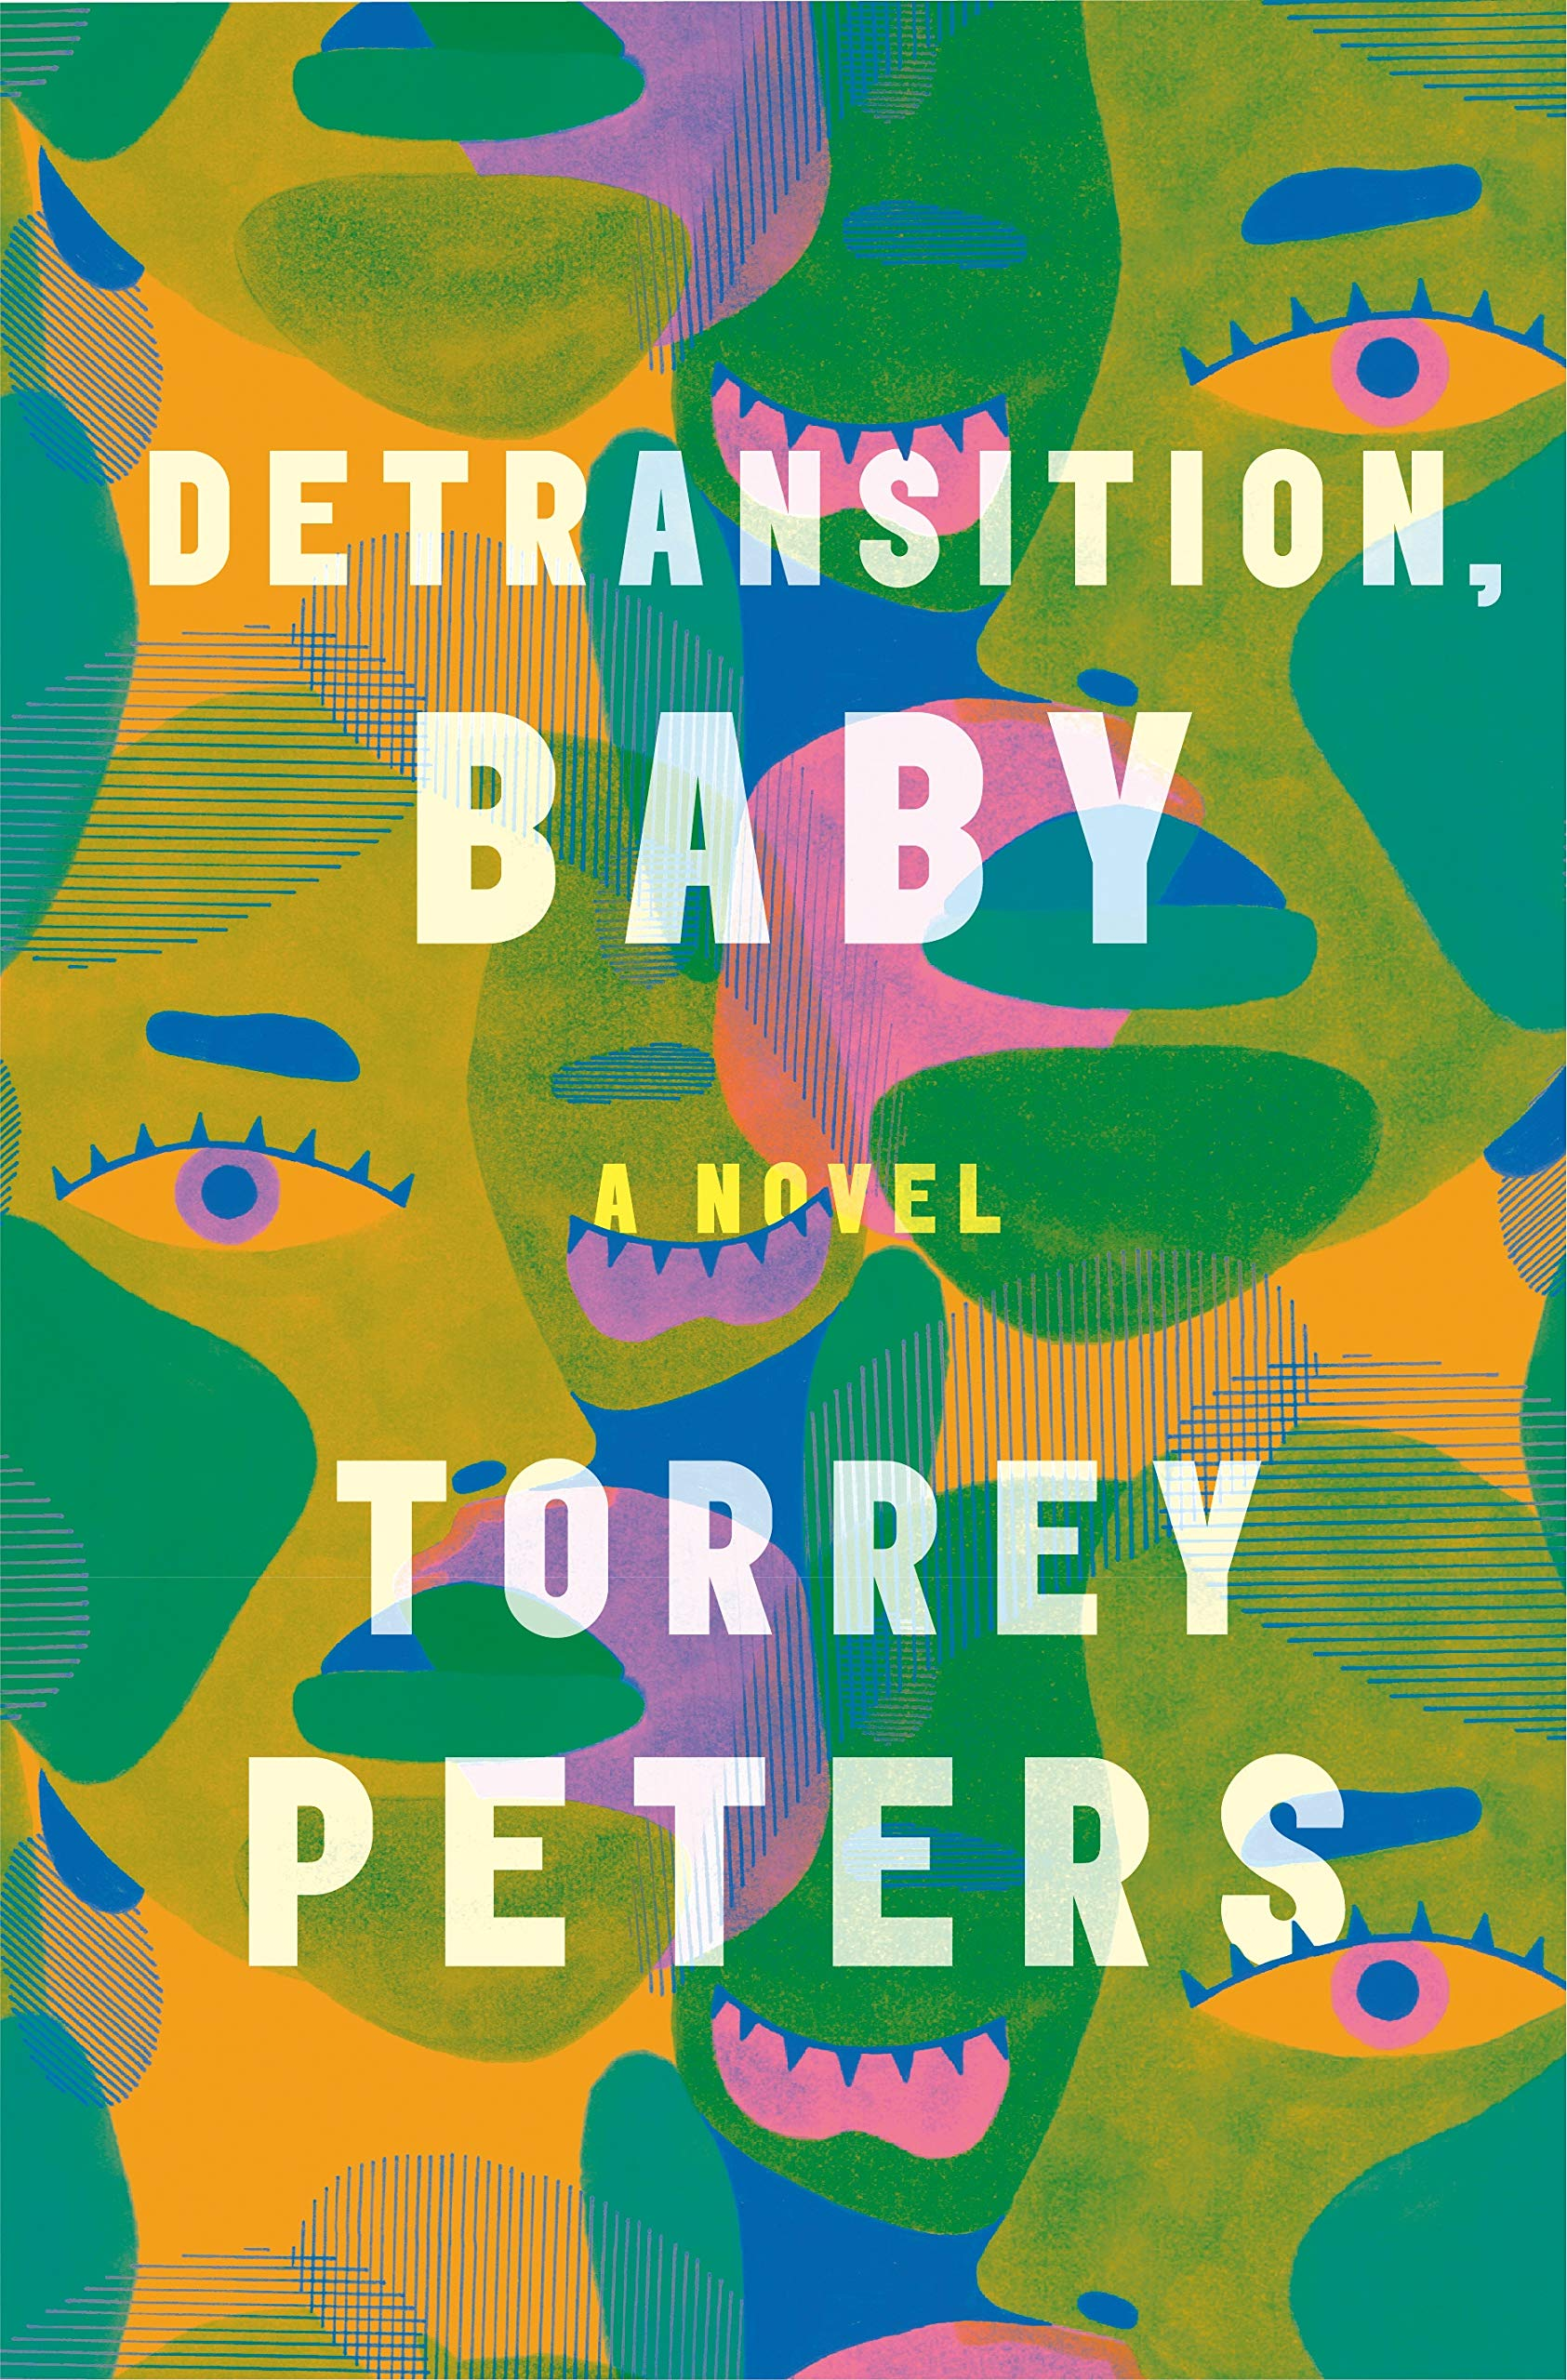 The cover of Detransition, Baby features many different faces abstractly collaged together.